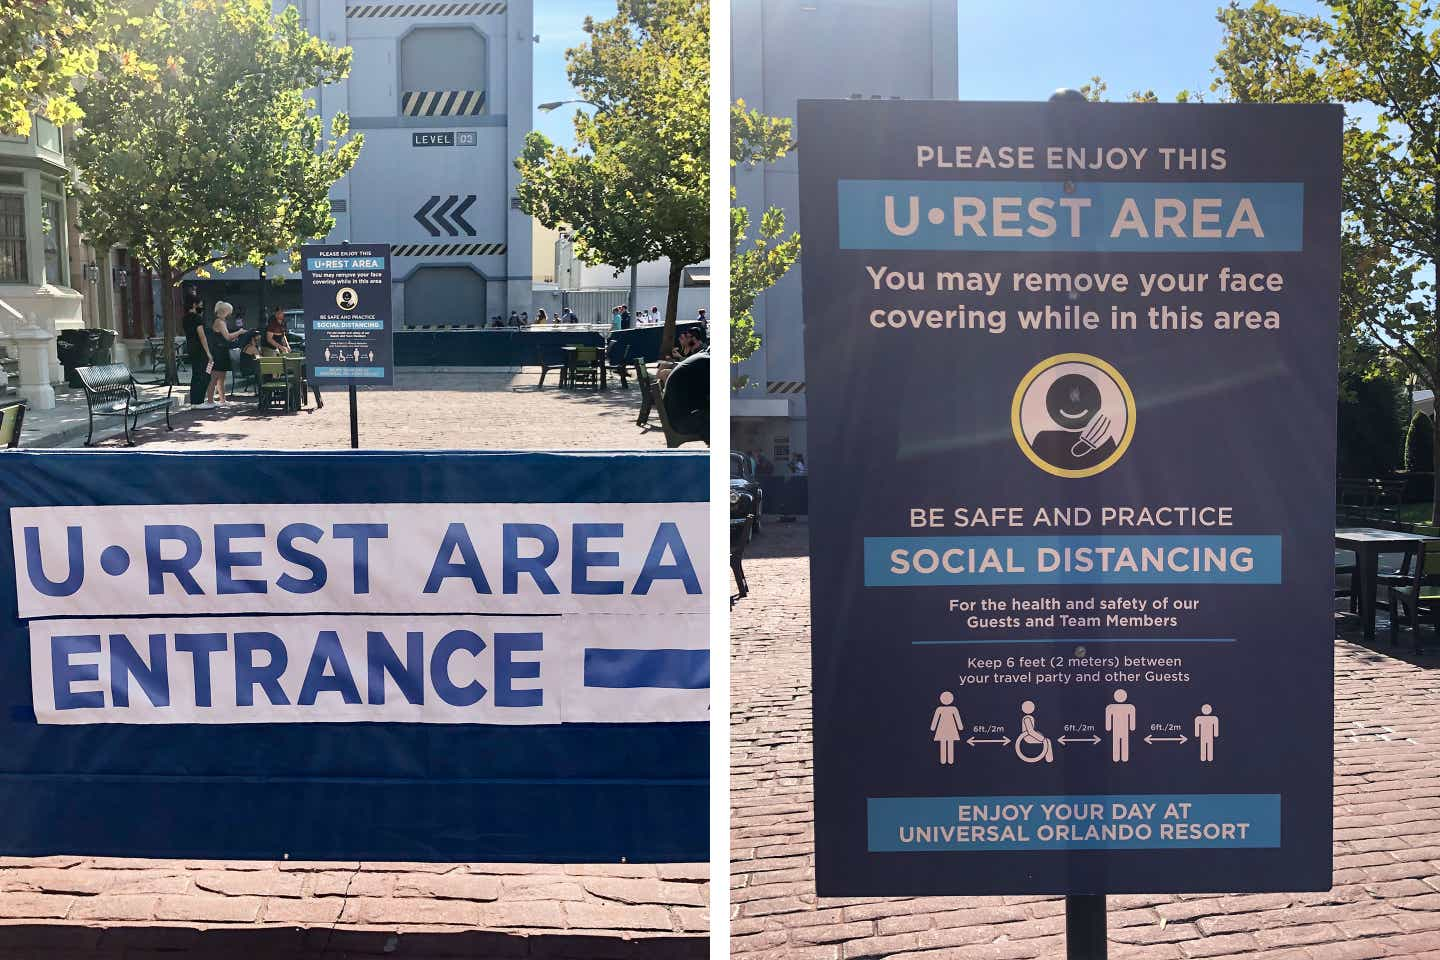 Left: Way-finding sign indicating the direction of the 'U•REST Area' entrance. Right: 'U•REST Area' signage that indicates social distancing rules within the area being enforced.